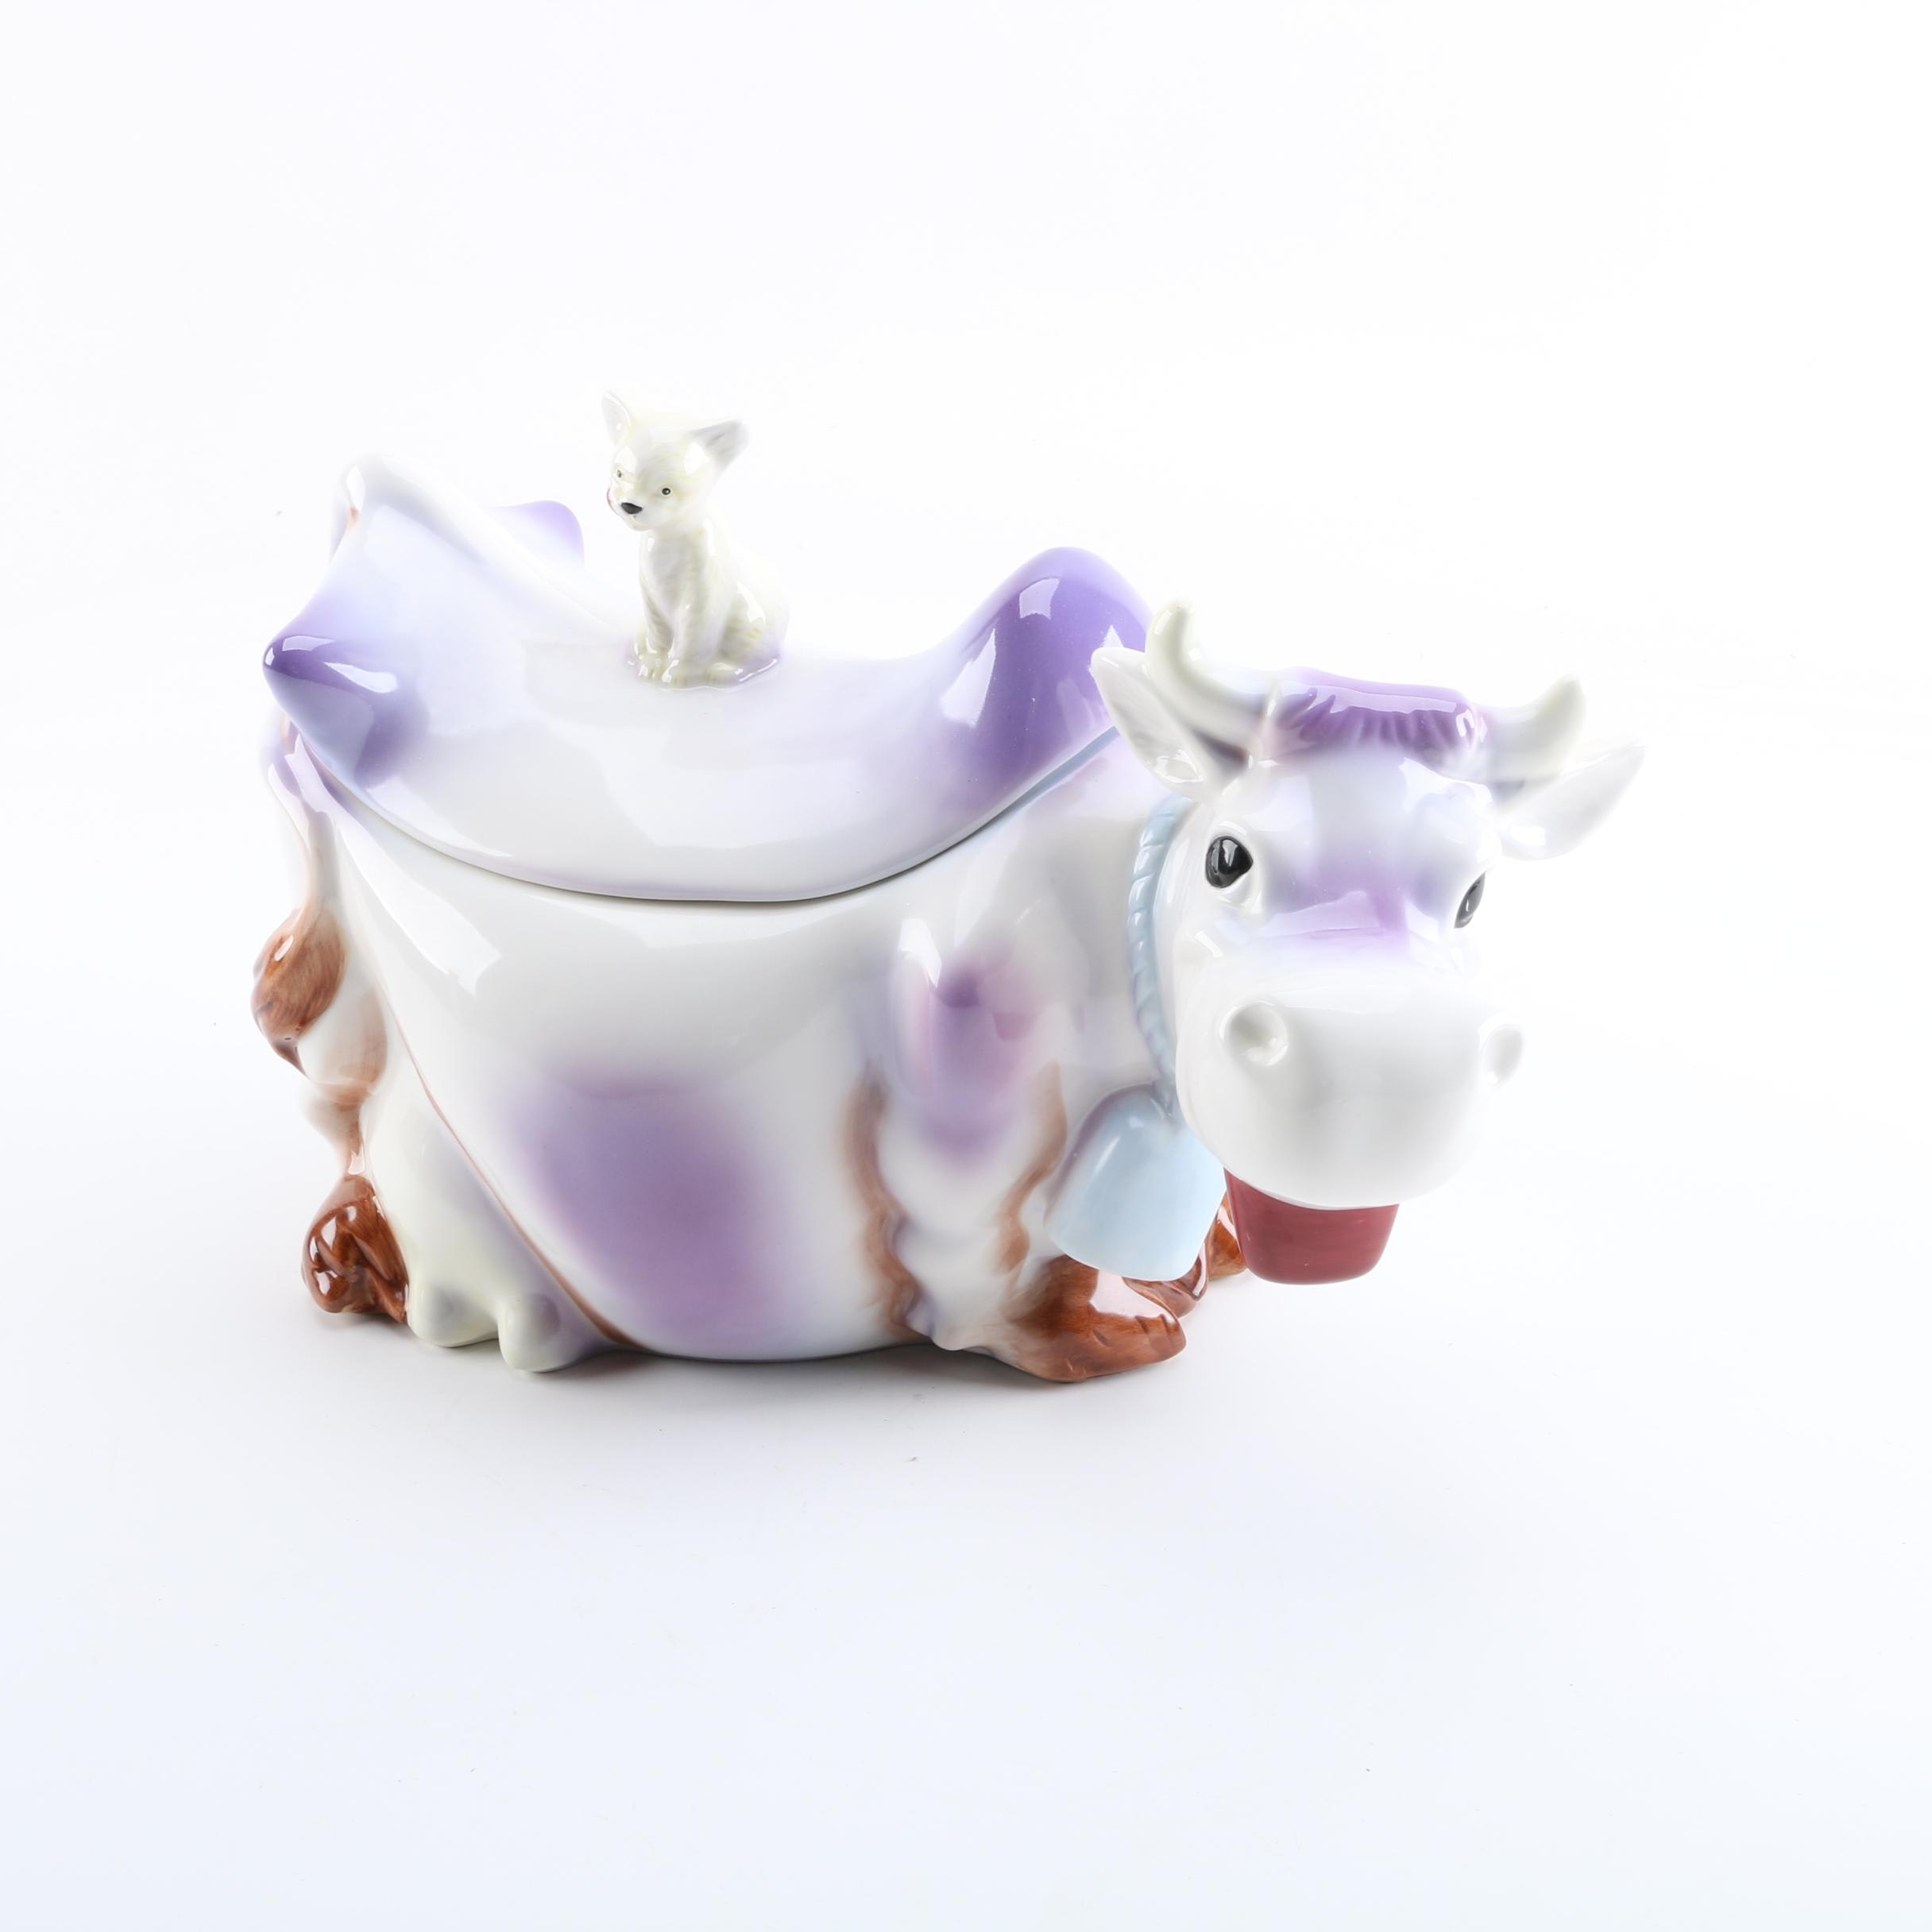 American Retro Cow Cookie Jar with Cat Finial